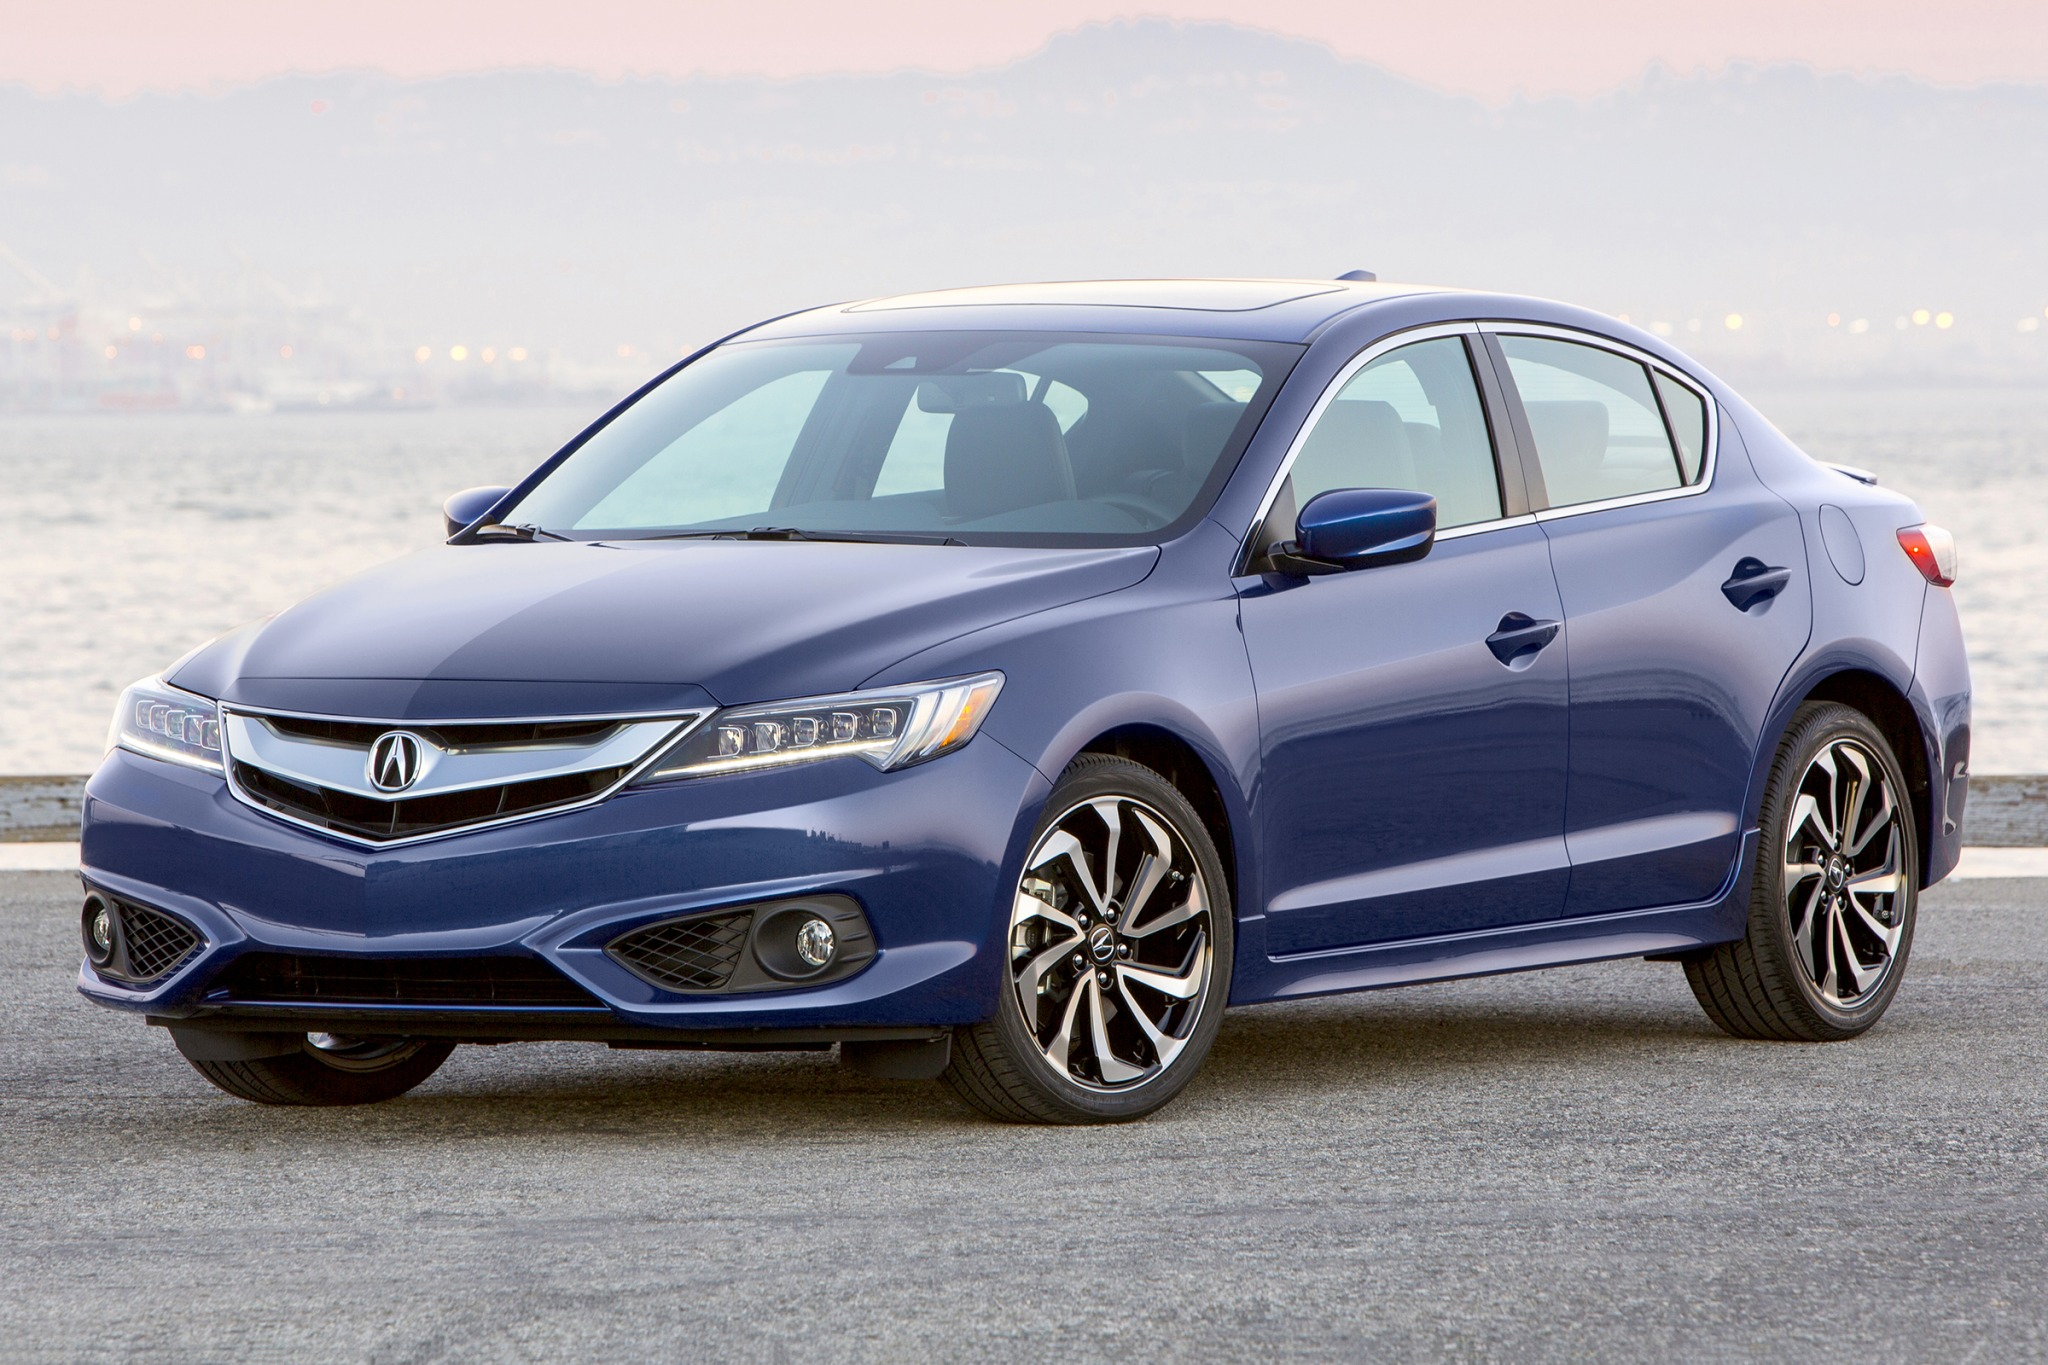 2016 acura ilx sedan technology plus and a spec packages fq oem 1 2048